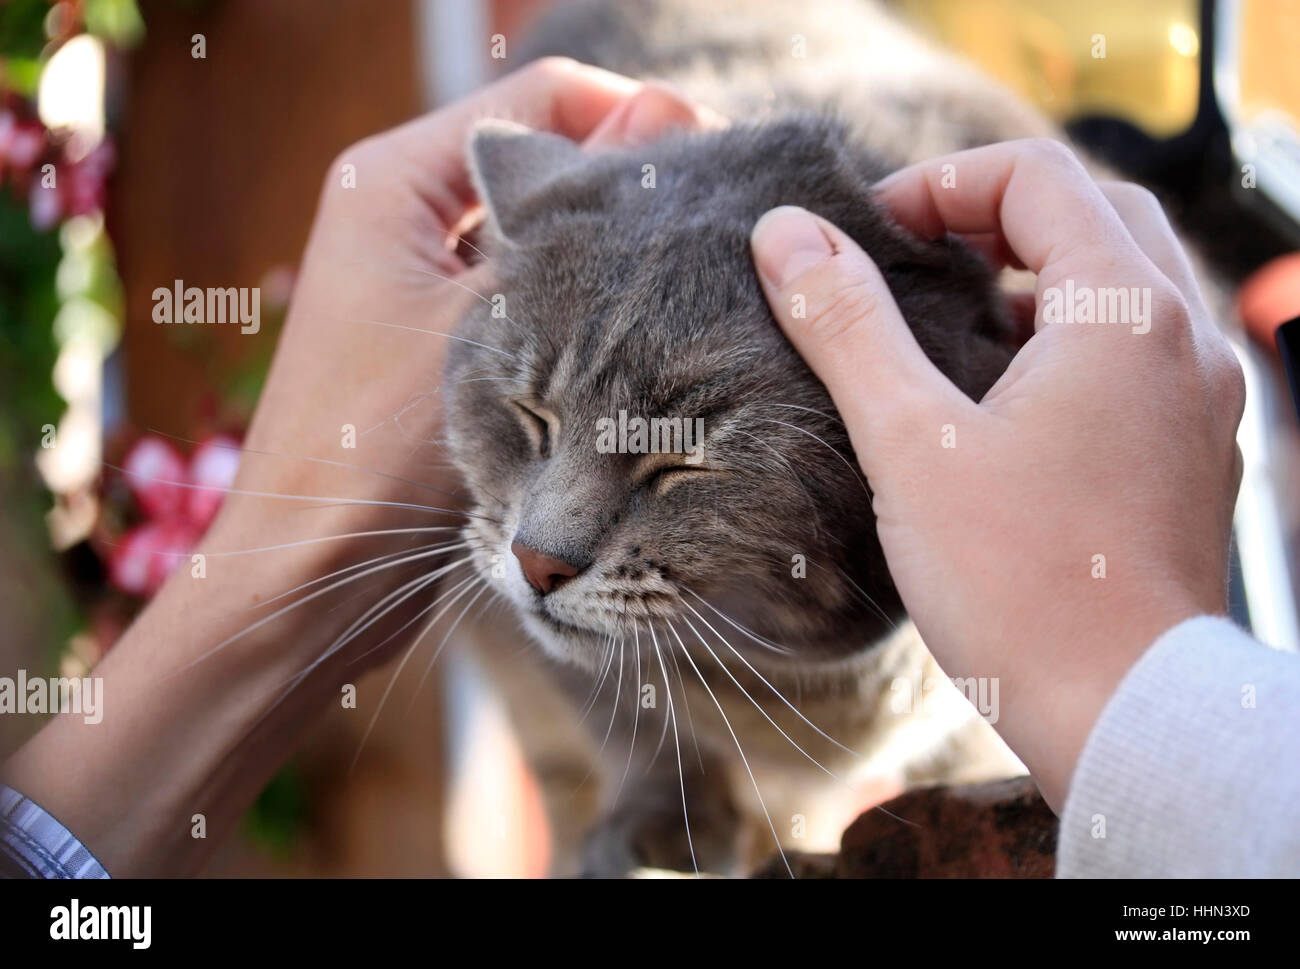 Greeting a nice cat who enjoys being gently petted. Happy moment with your pet. - Stock Image